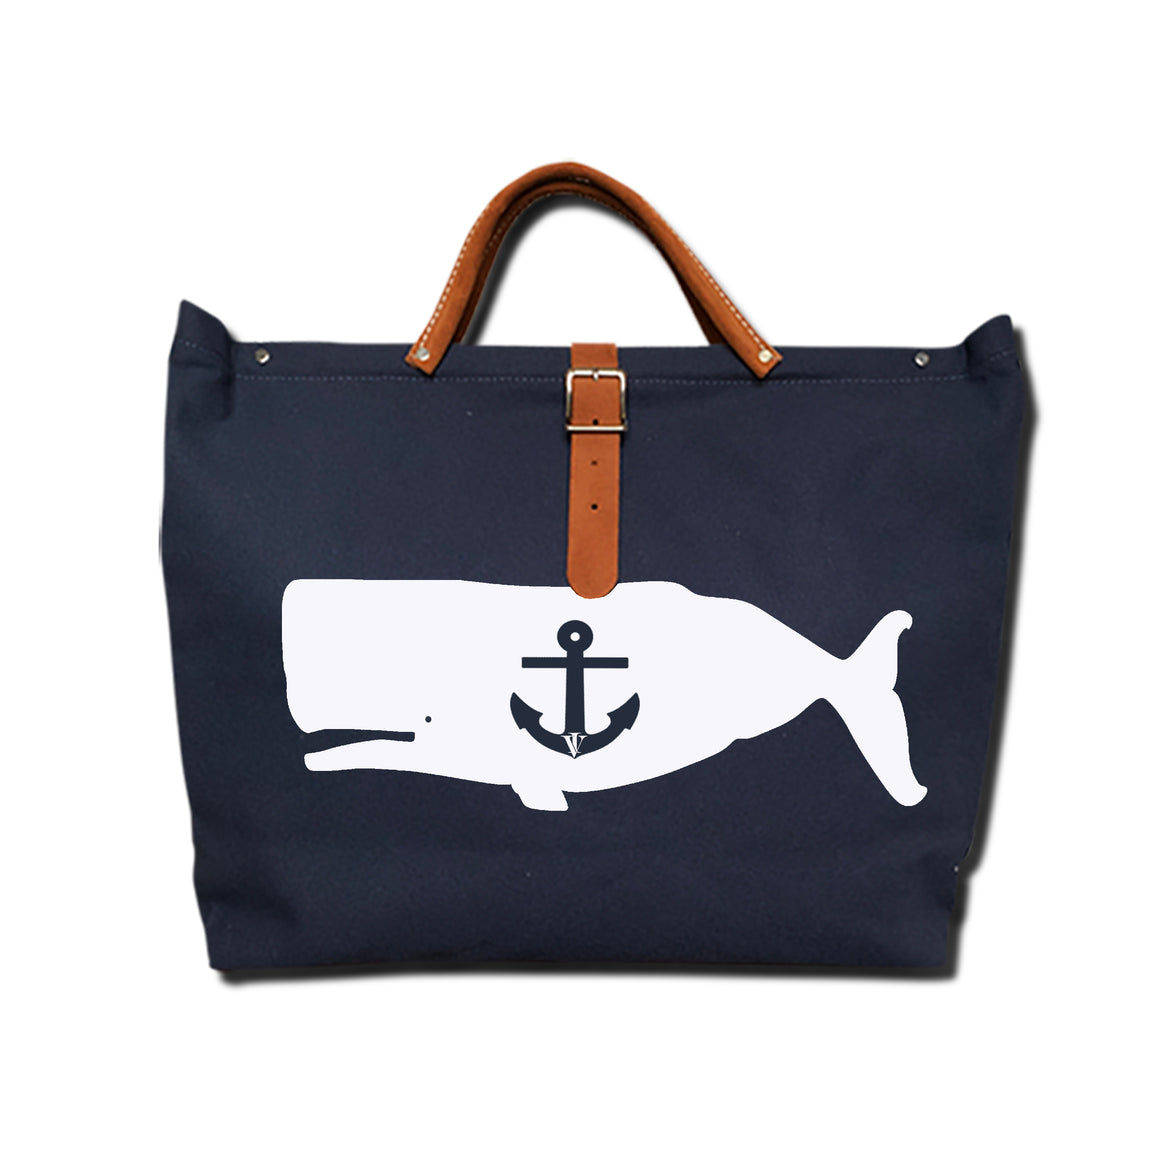 IVY WHALE CANVAS TOTE NAVY/WHITE